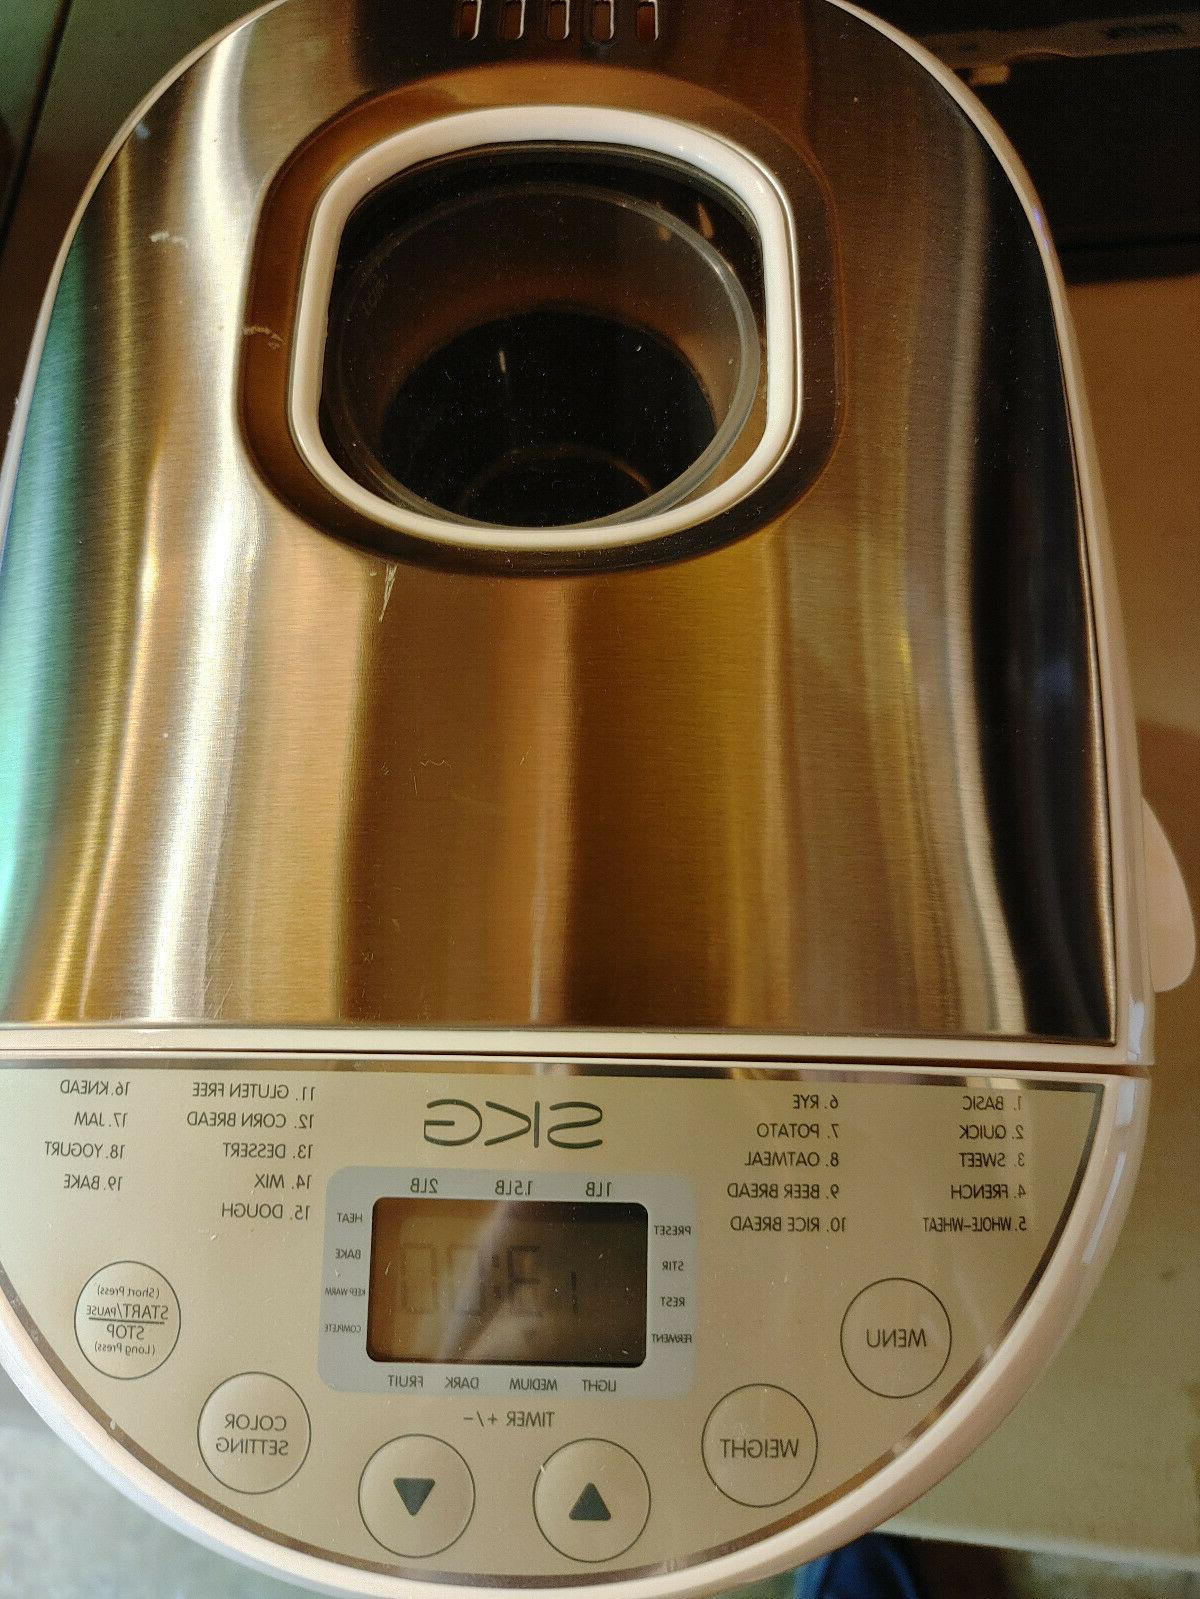 3920 automatic bread machine with manual